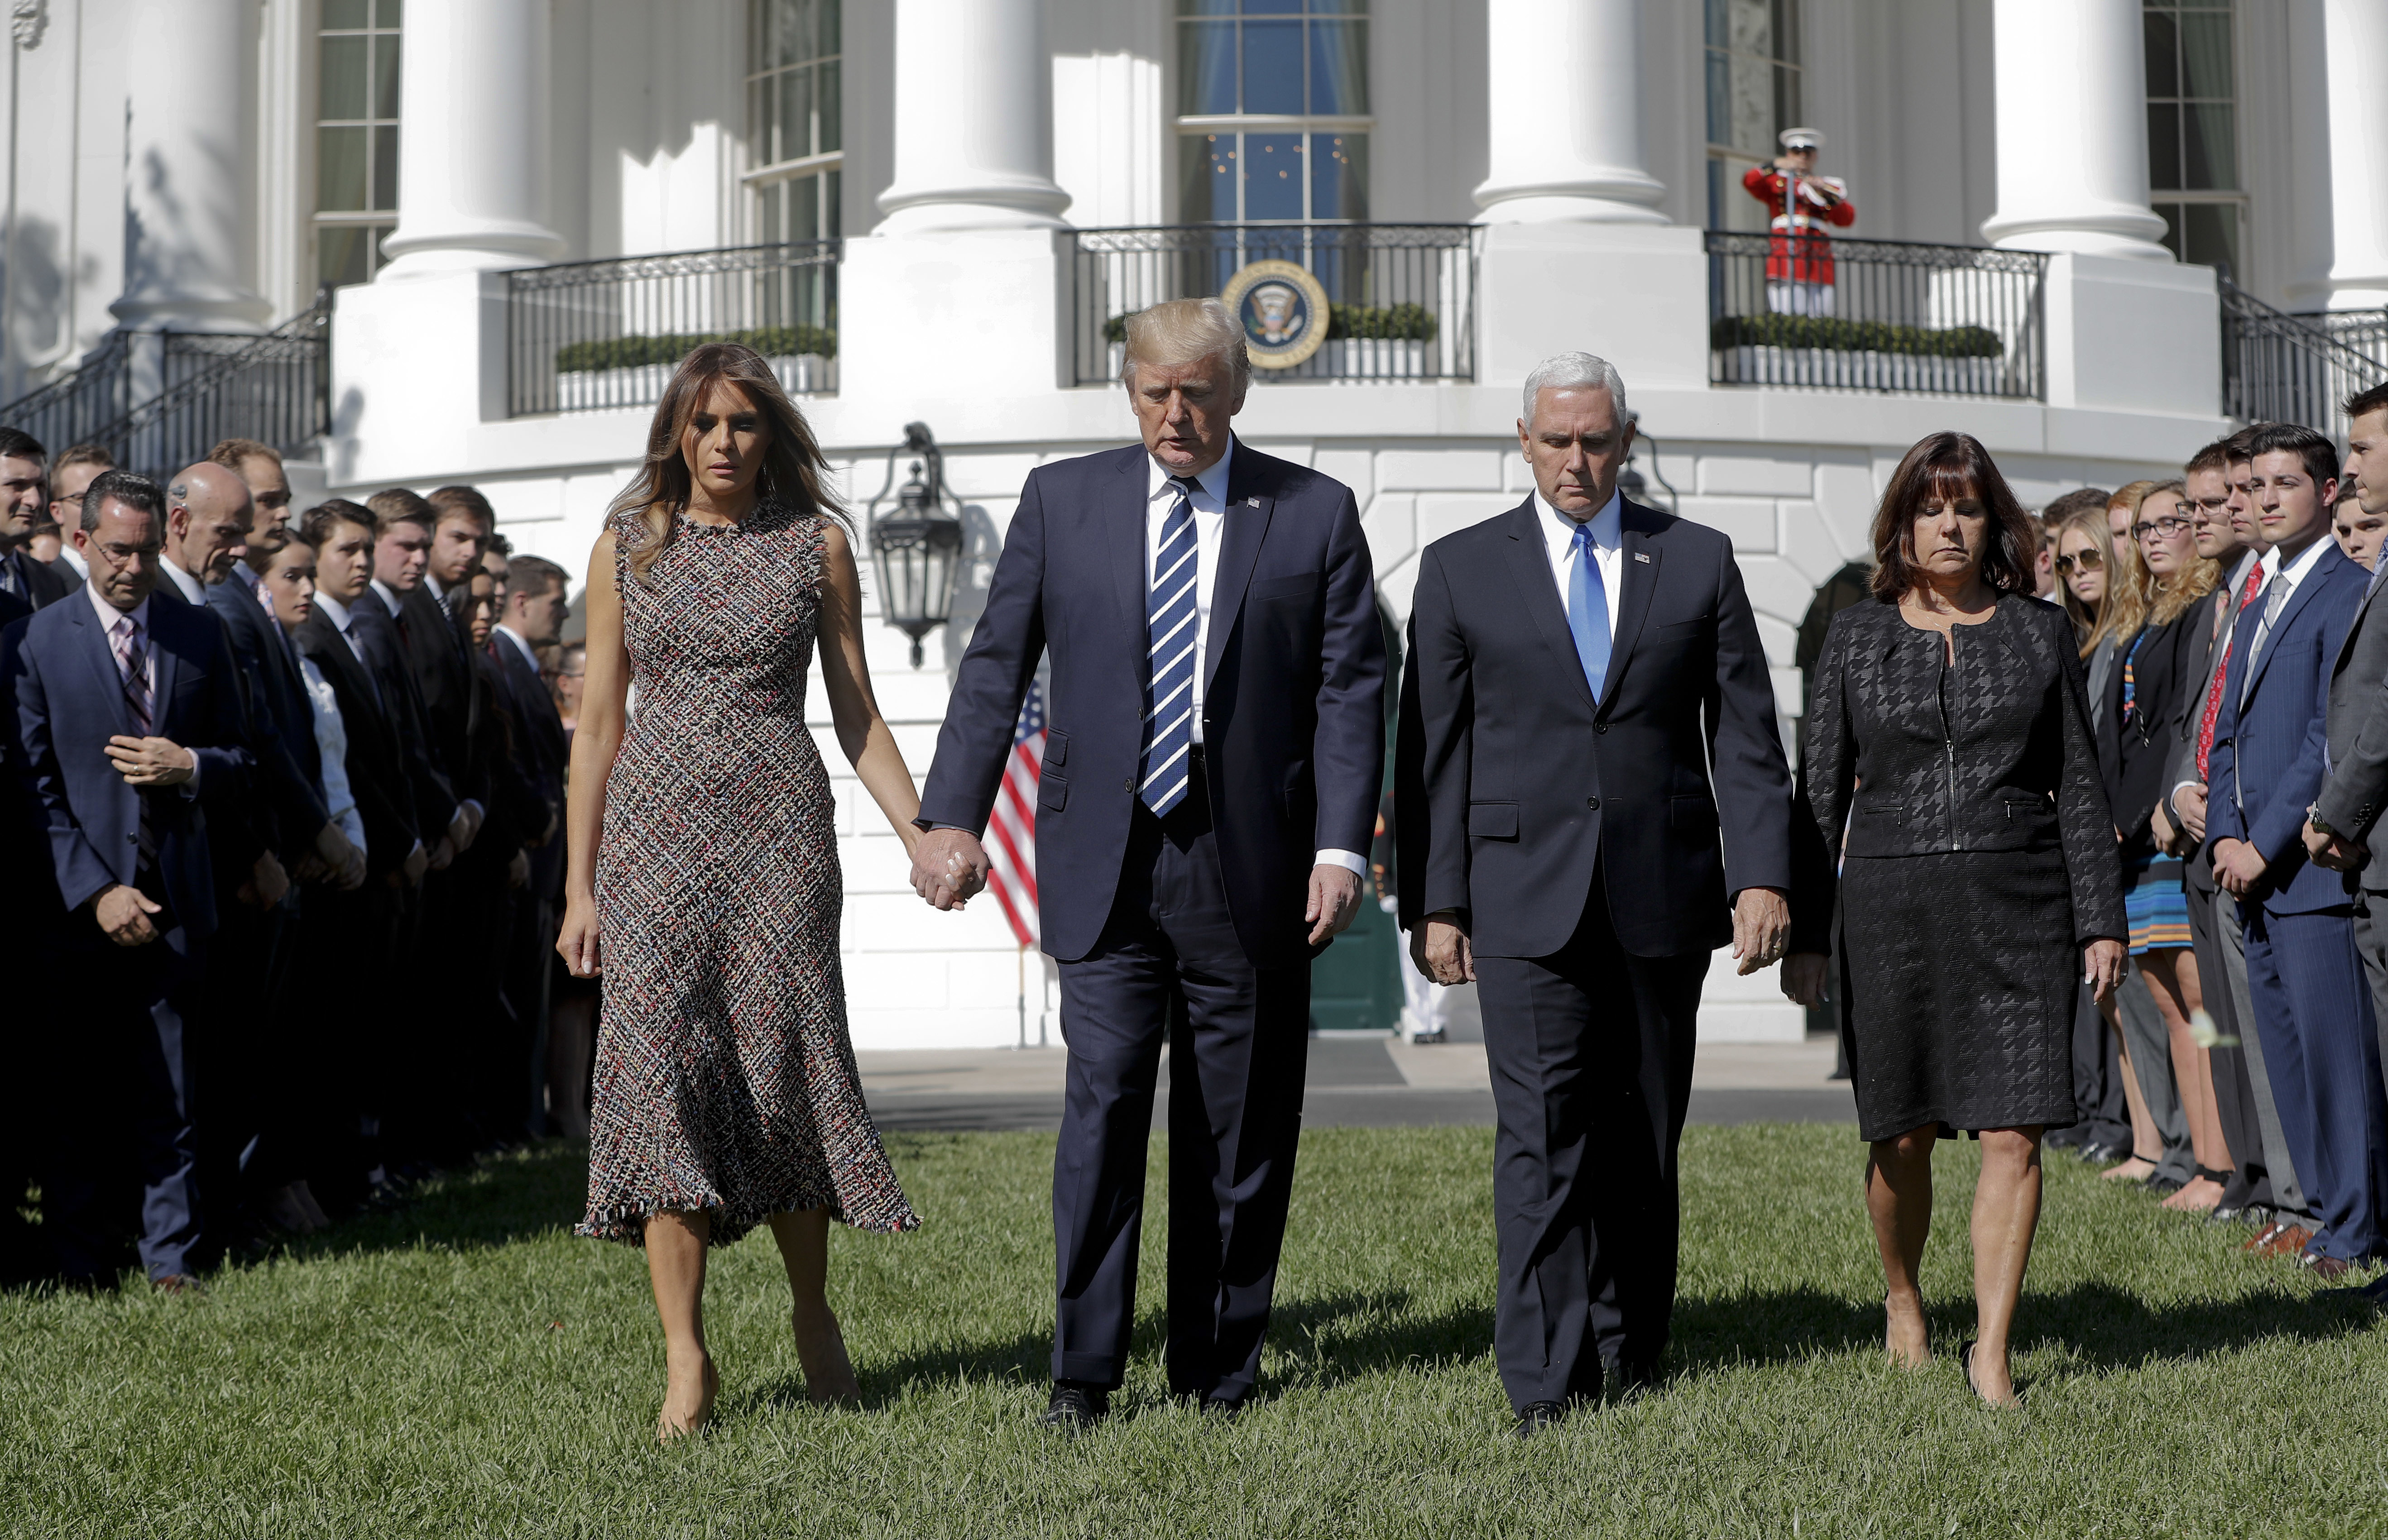 <div class='meta'><div class='origin-logo' data-origin='none'></div><span class='caption-text' data-credit='Pablo Martinez Monsivais/AP Photo'>President Donald Trump and first lady Melania Trump walk with with Vice President Mike Pence and his wife Karen on the South Lawn of the White House on Monday.</span></div>